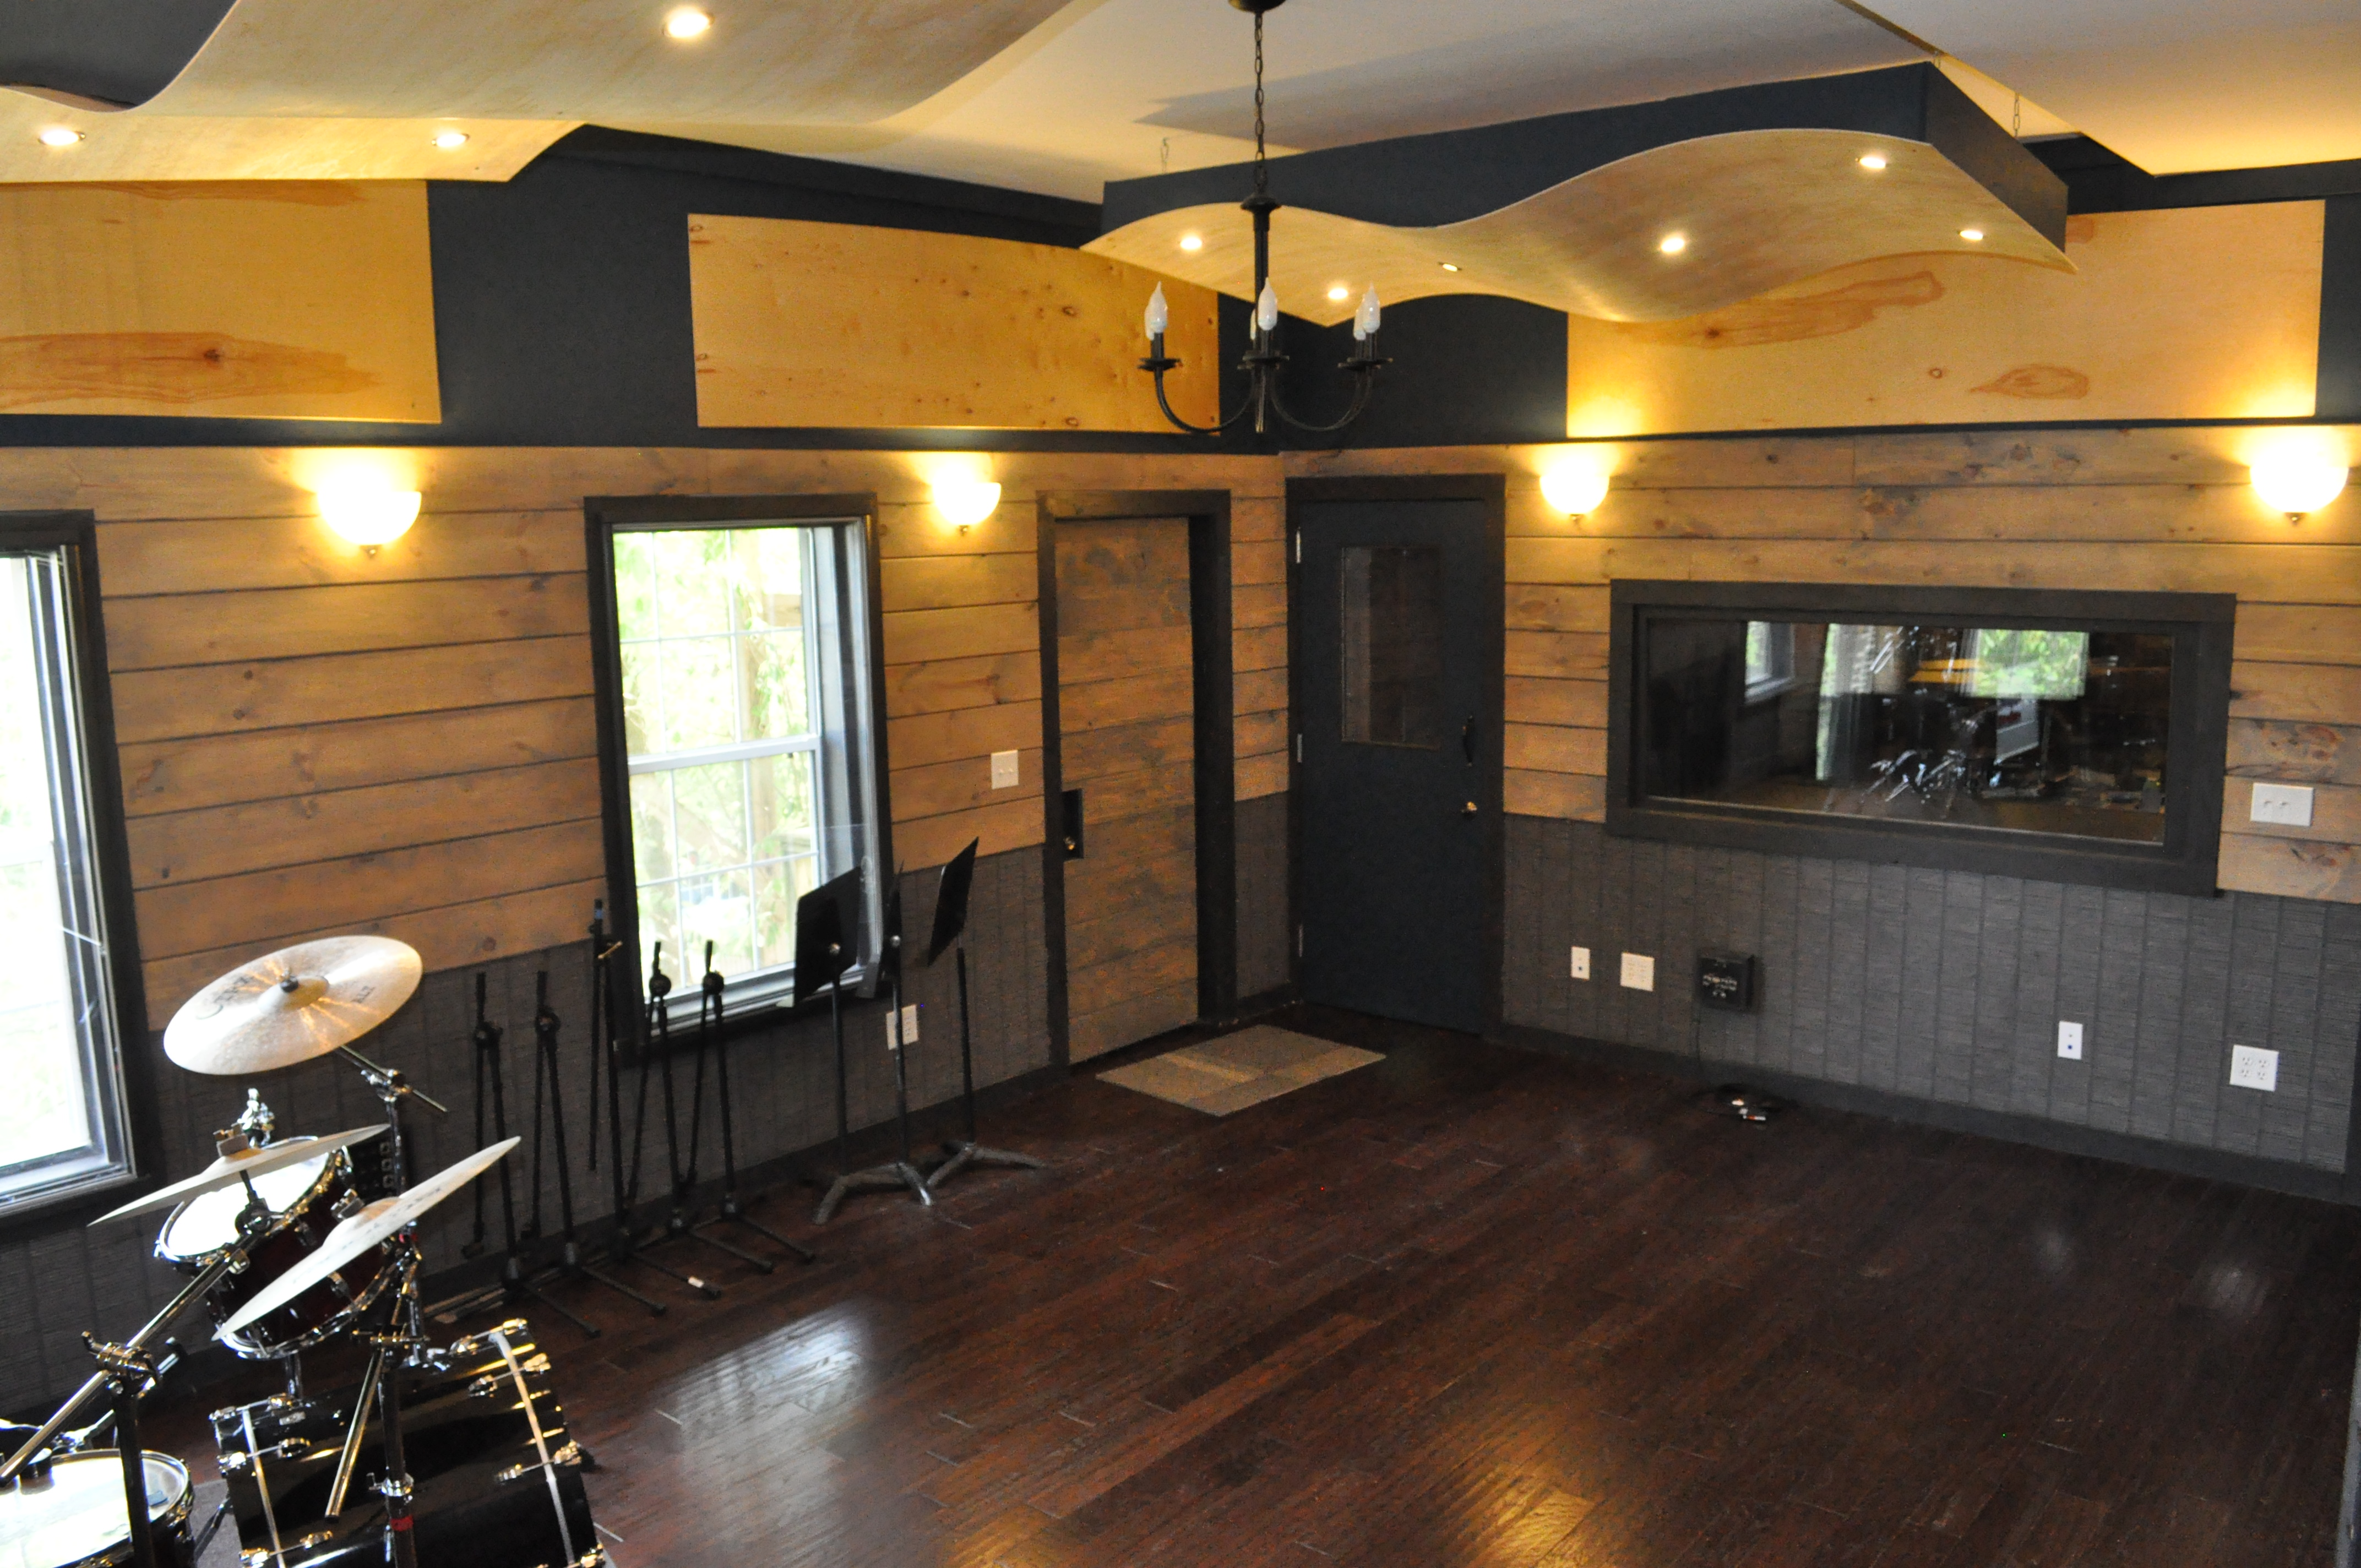 Astounding Advantage Music Production Recording Studio Rental 1500 For A Largest Home Design Picture Inspirations Pitcheantrous